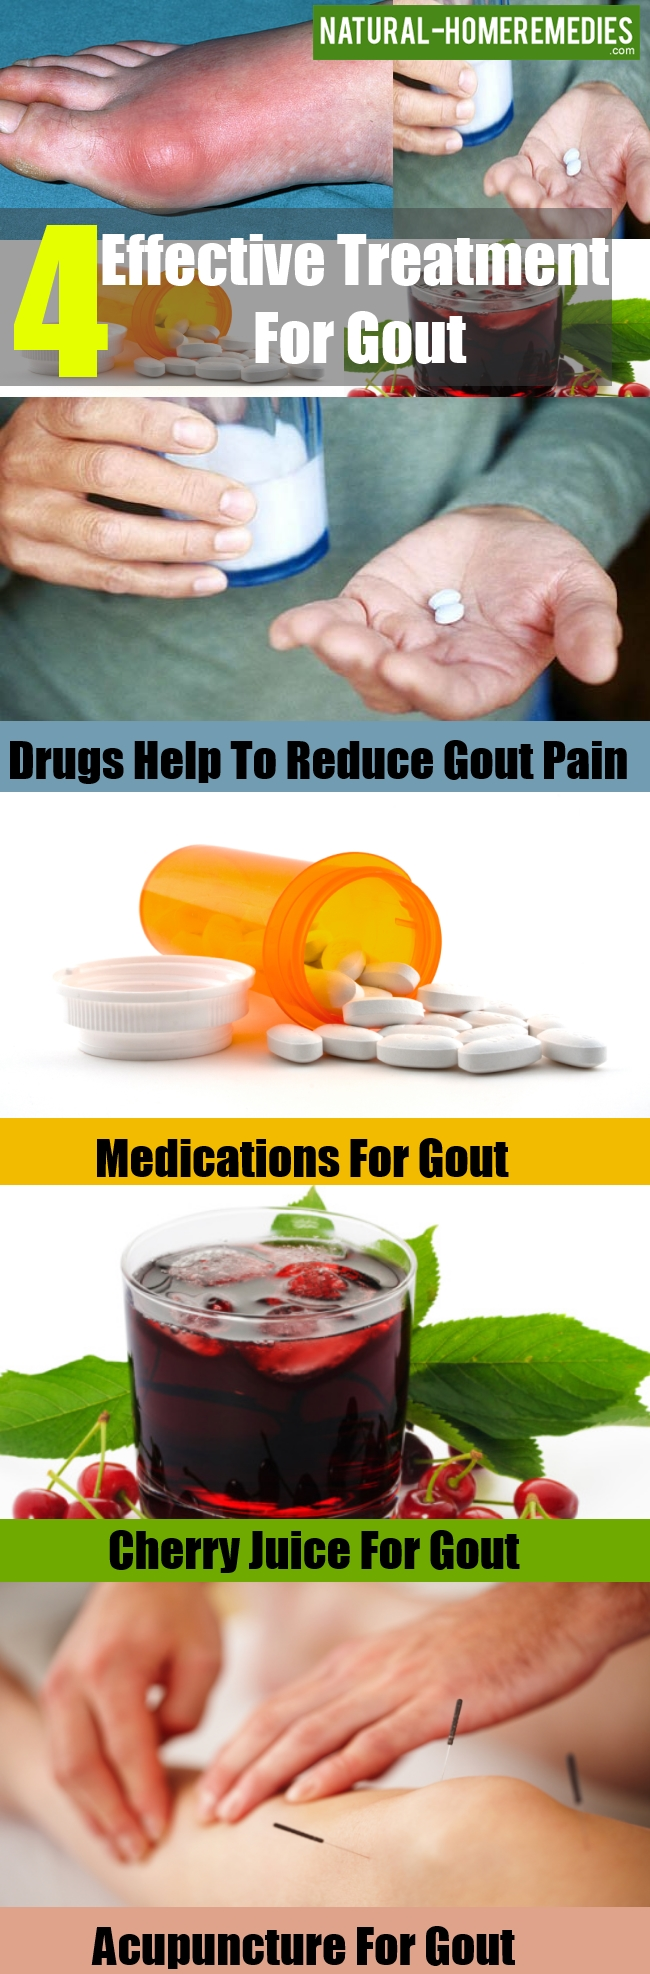 Effective Treatment For Gout